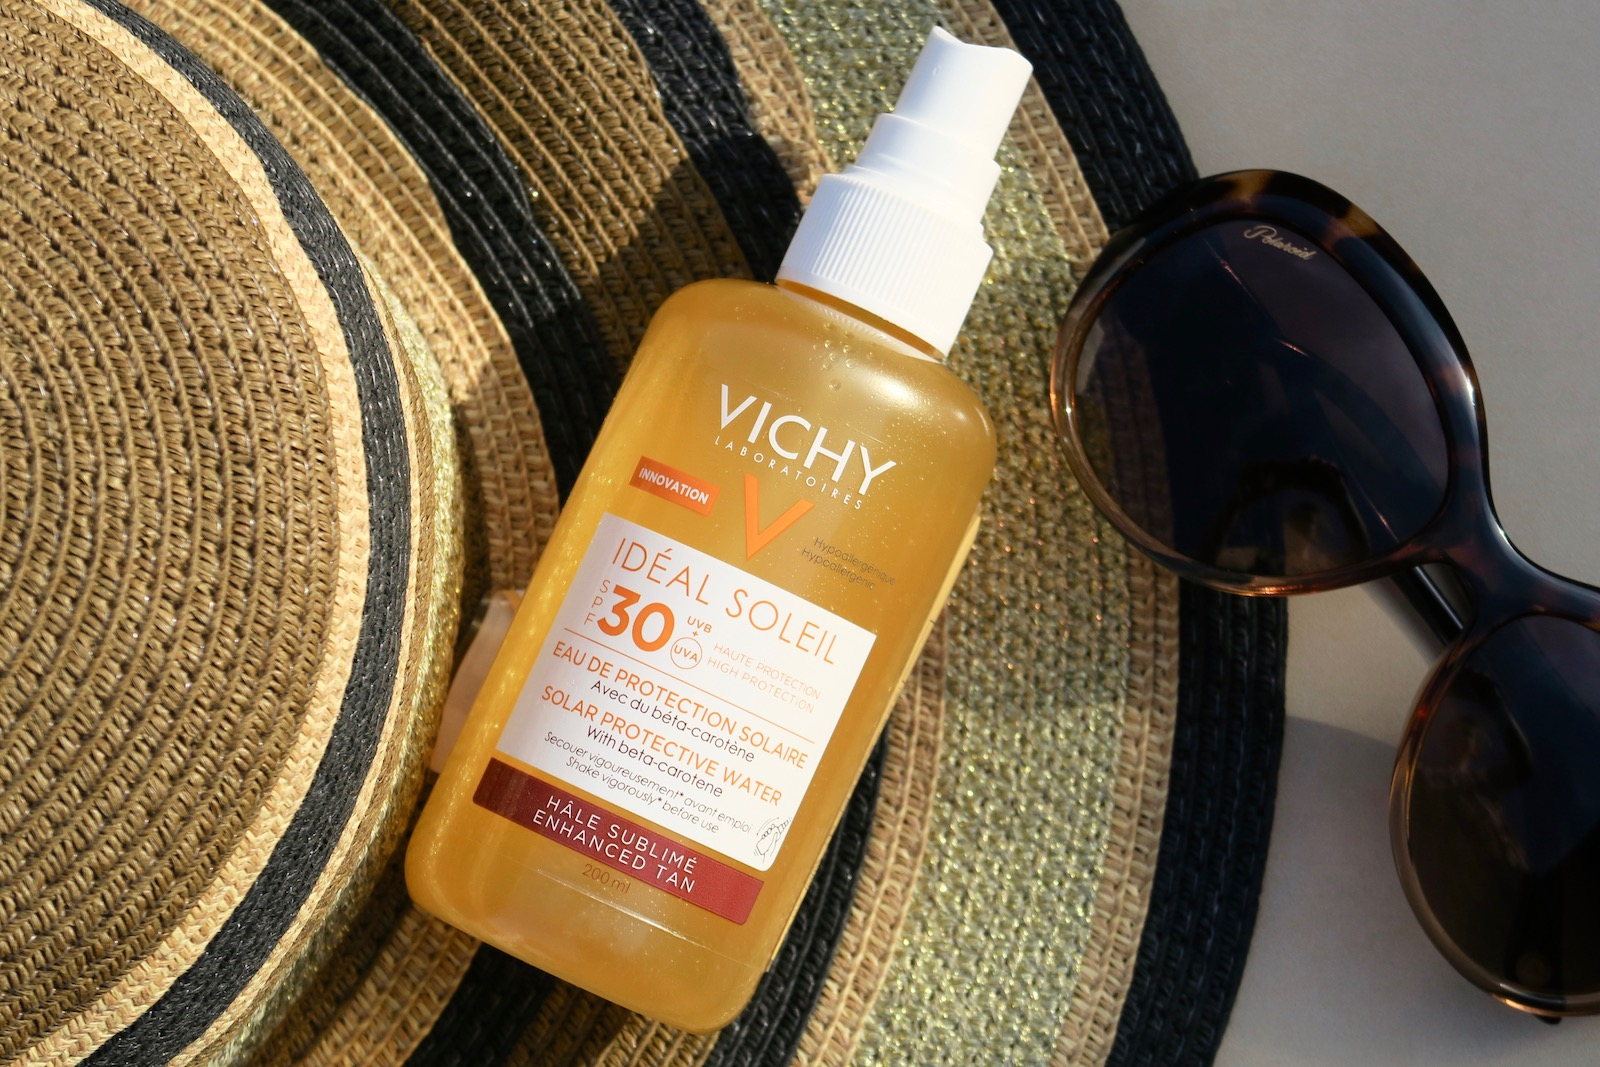 Vichy IDEAL SOLEIL TAN ENHANCING SPF30 PROTECTIVE SOLAR WATER